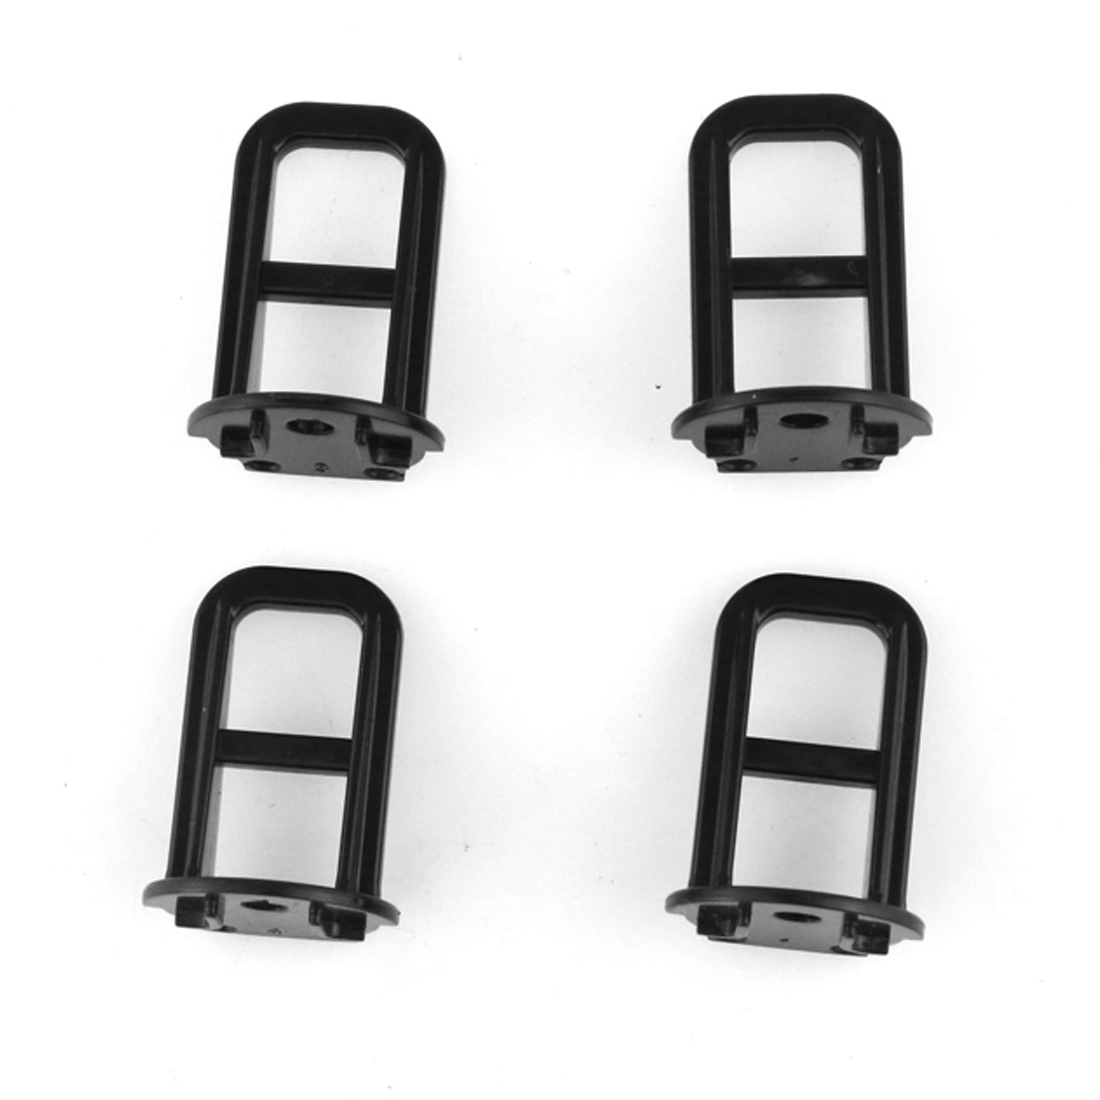 MJX Bugs 3 Parts 4Pcs Extended Landing Gear Undercarriage Shock Tripod for MJX B3 Mini Drone Quadcopter Replacement